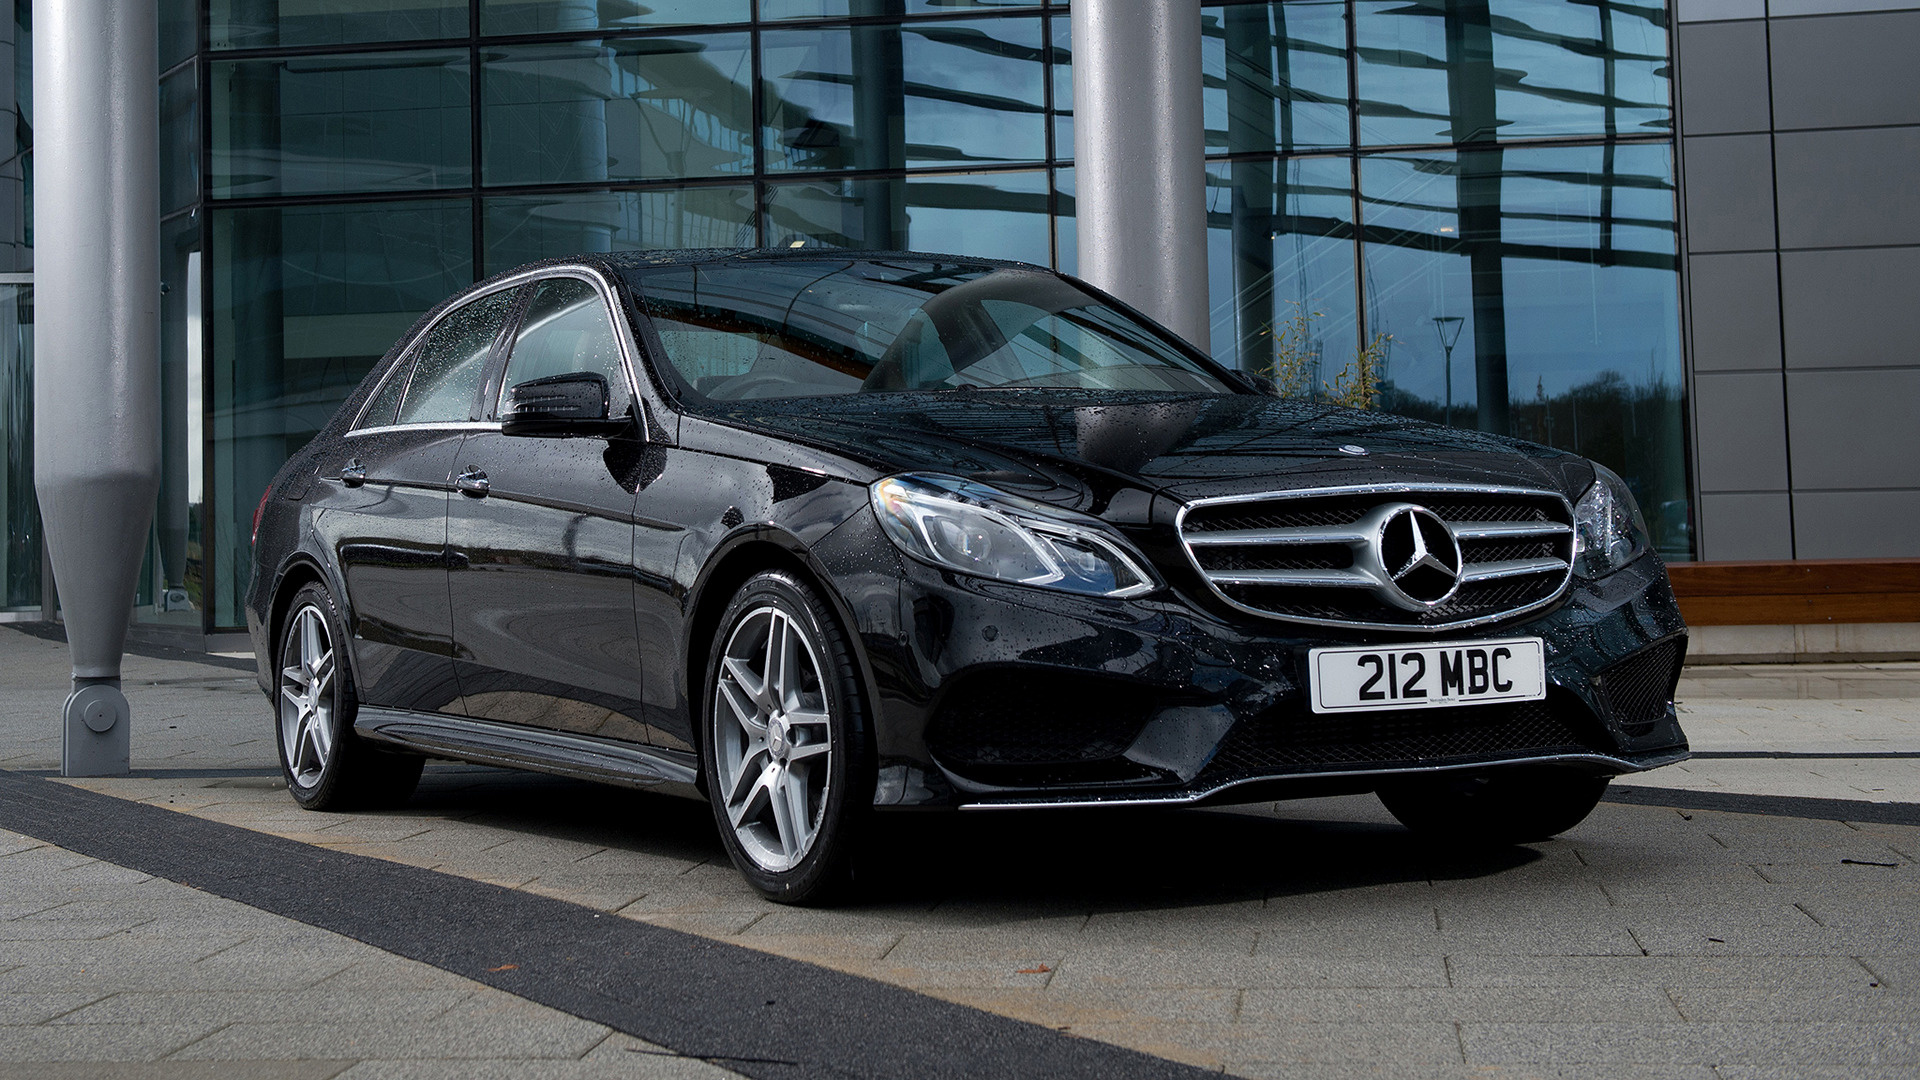 carpixel.net-2013-mercedes-benz-e-350-bluetec-amg-sports-package-uk-17939-1920x1080